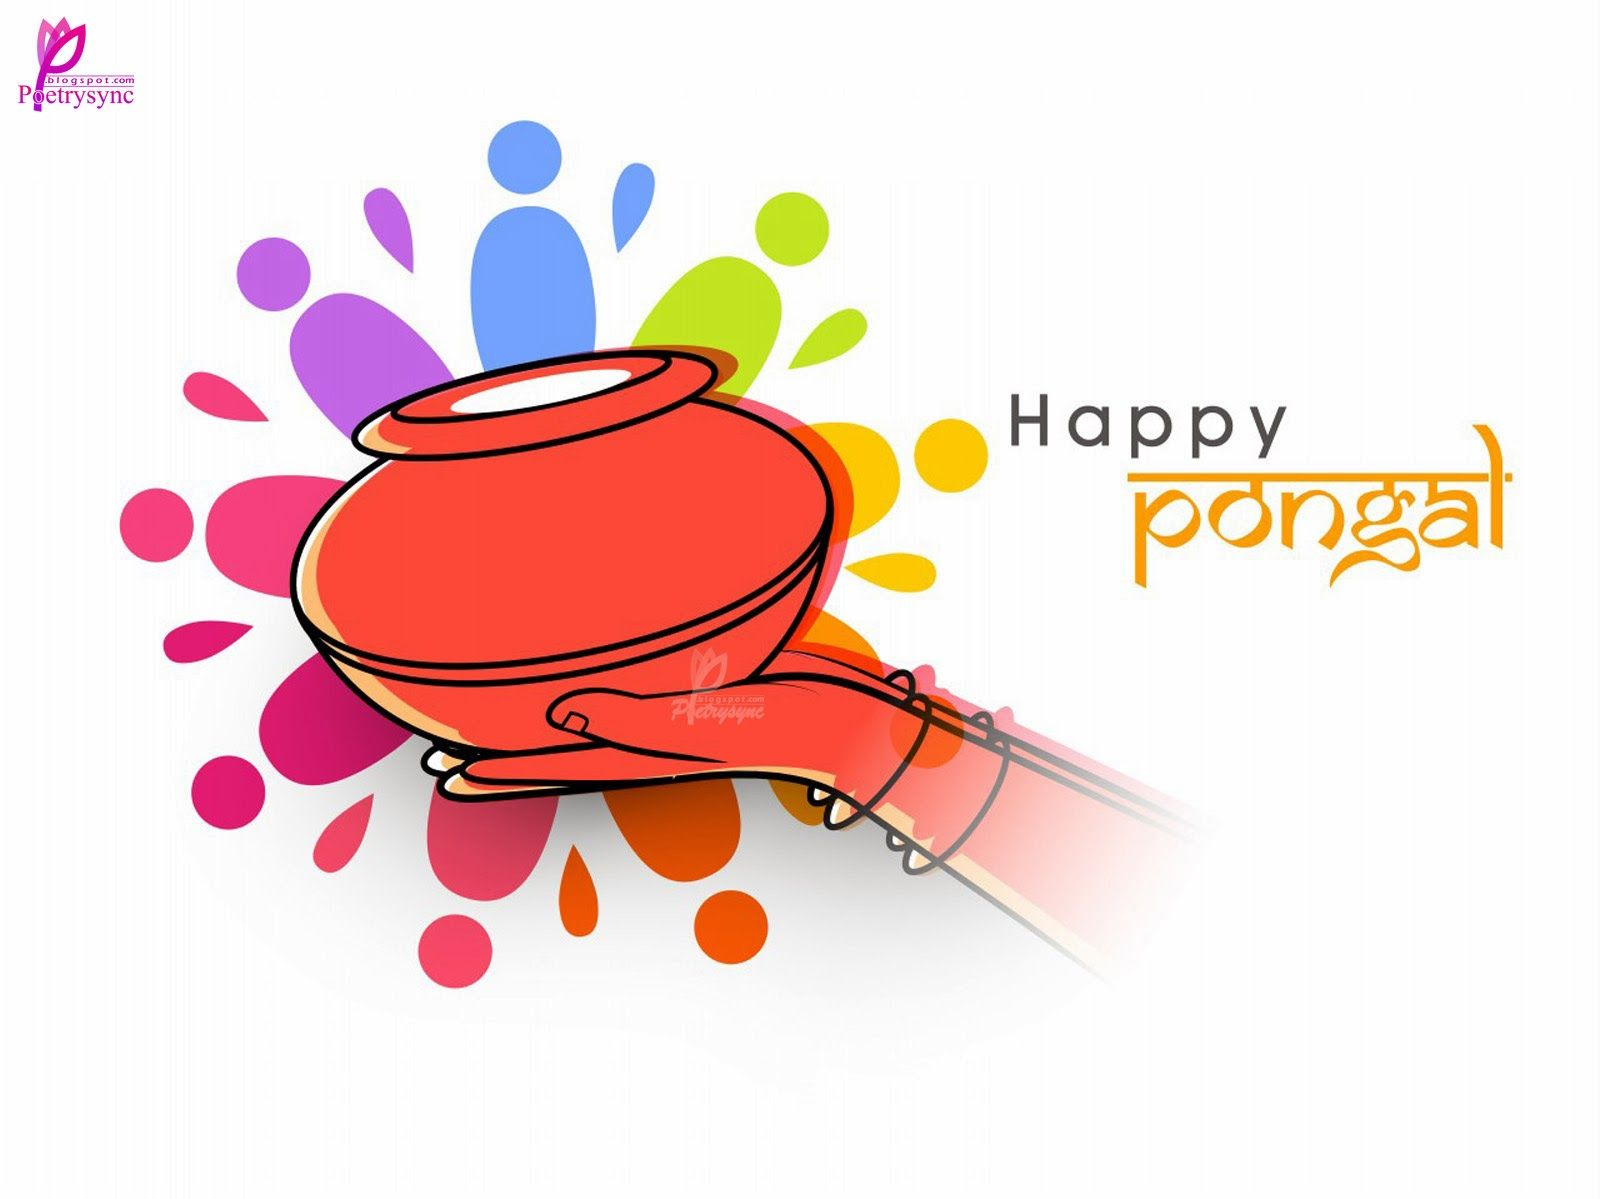 Happy Pongal Festival Wishes Card Image Wallpaperg 16001199